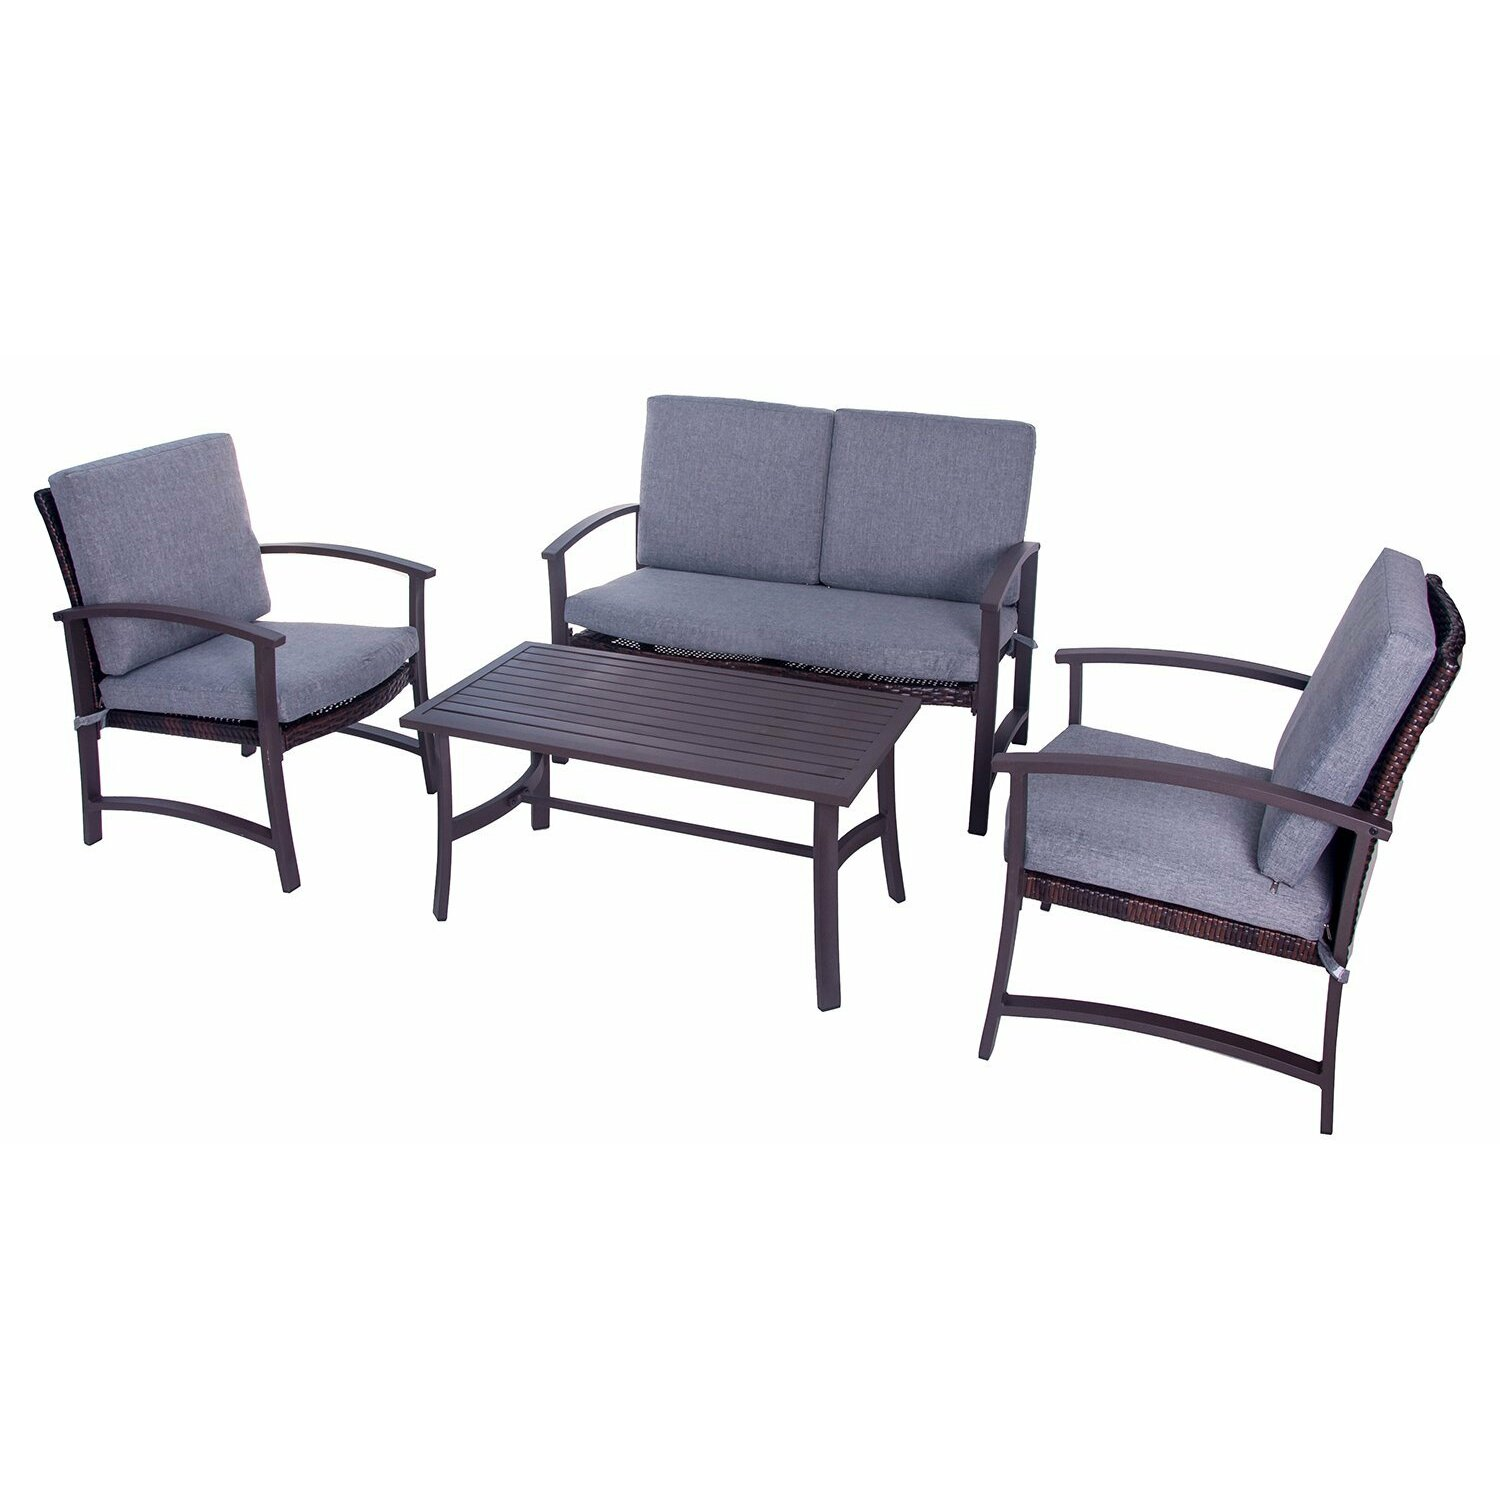 Wayfair Outdoor Patio Furniture Biscayne Outdoor Furniture Wayfair Wayfair Outdoor Furniture: home expo patio furniture